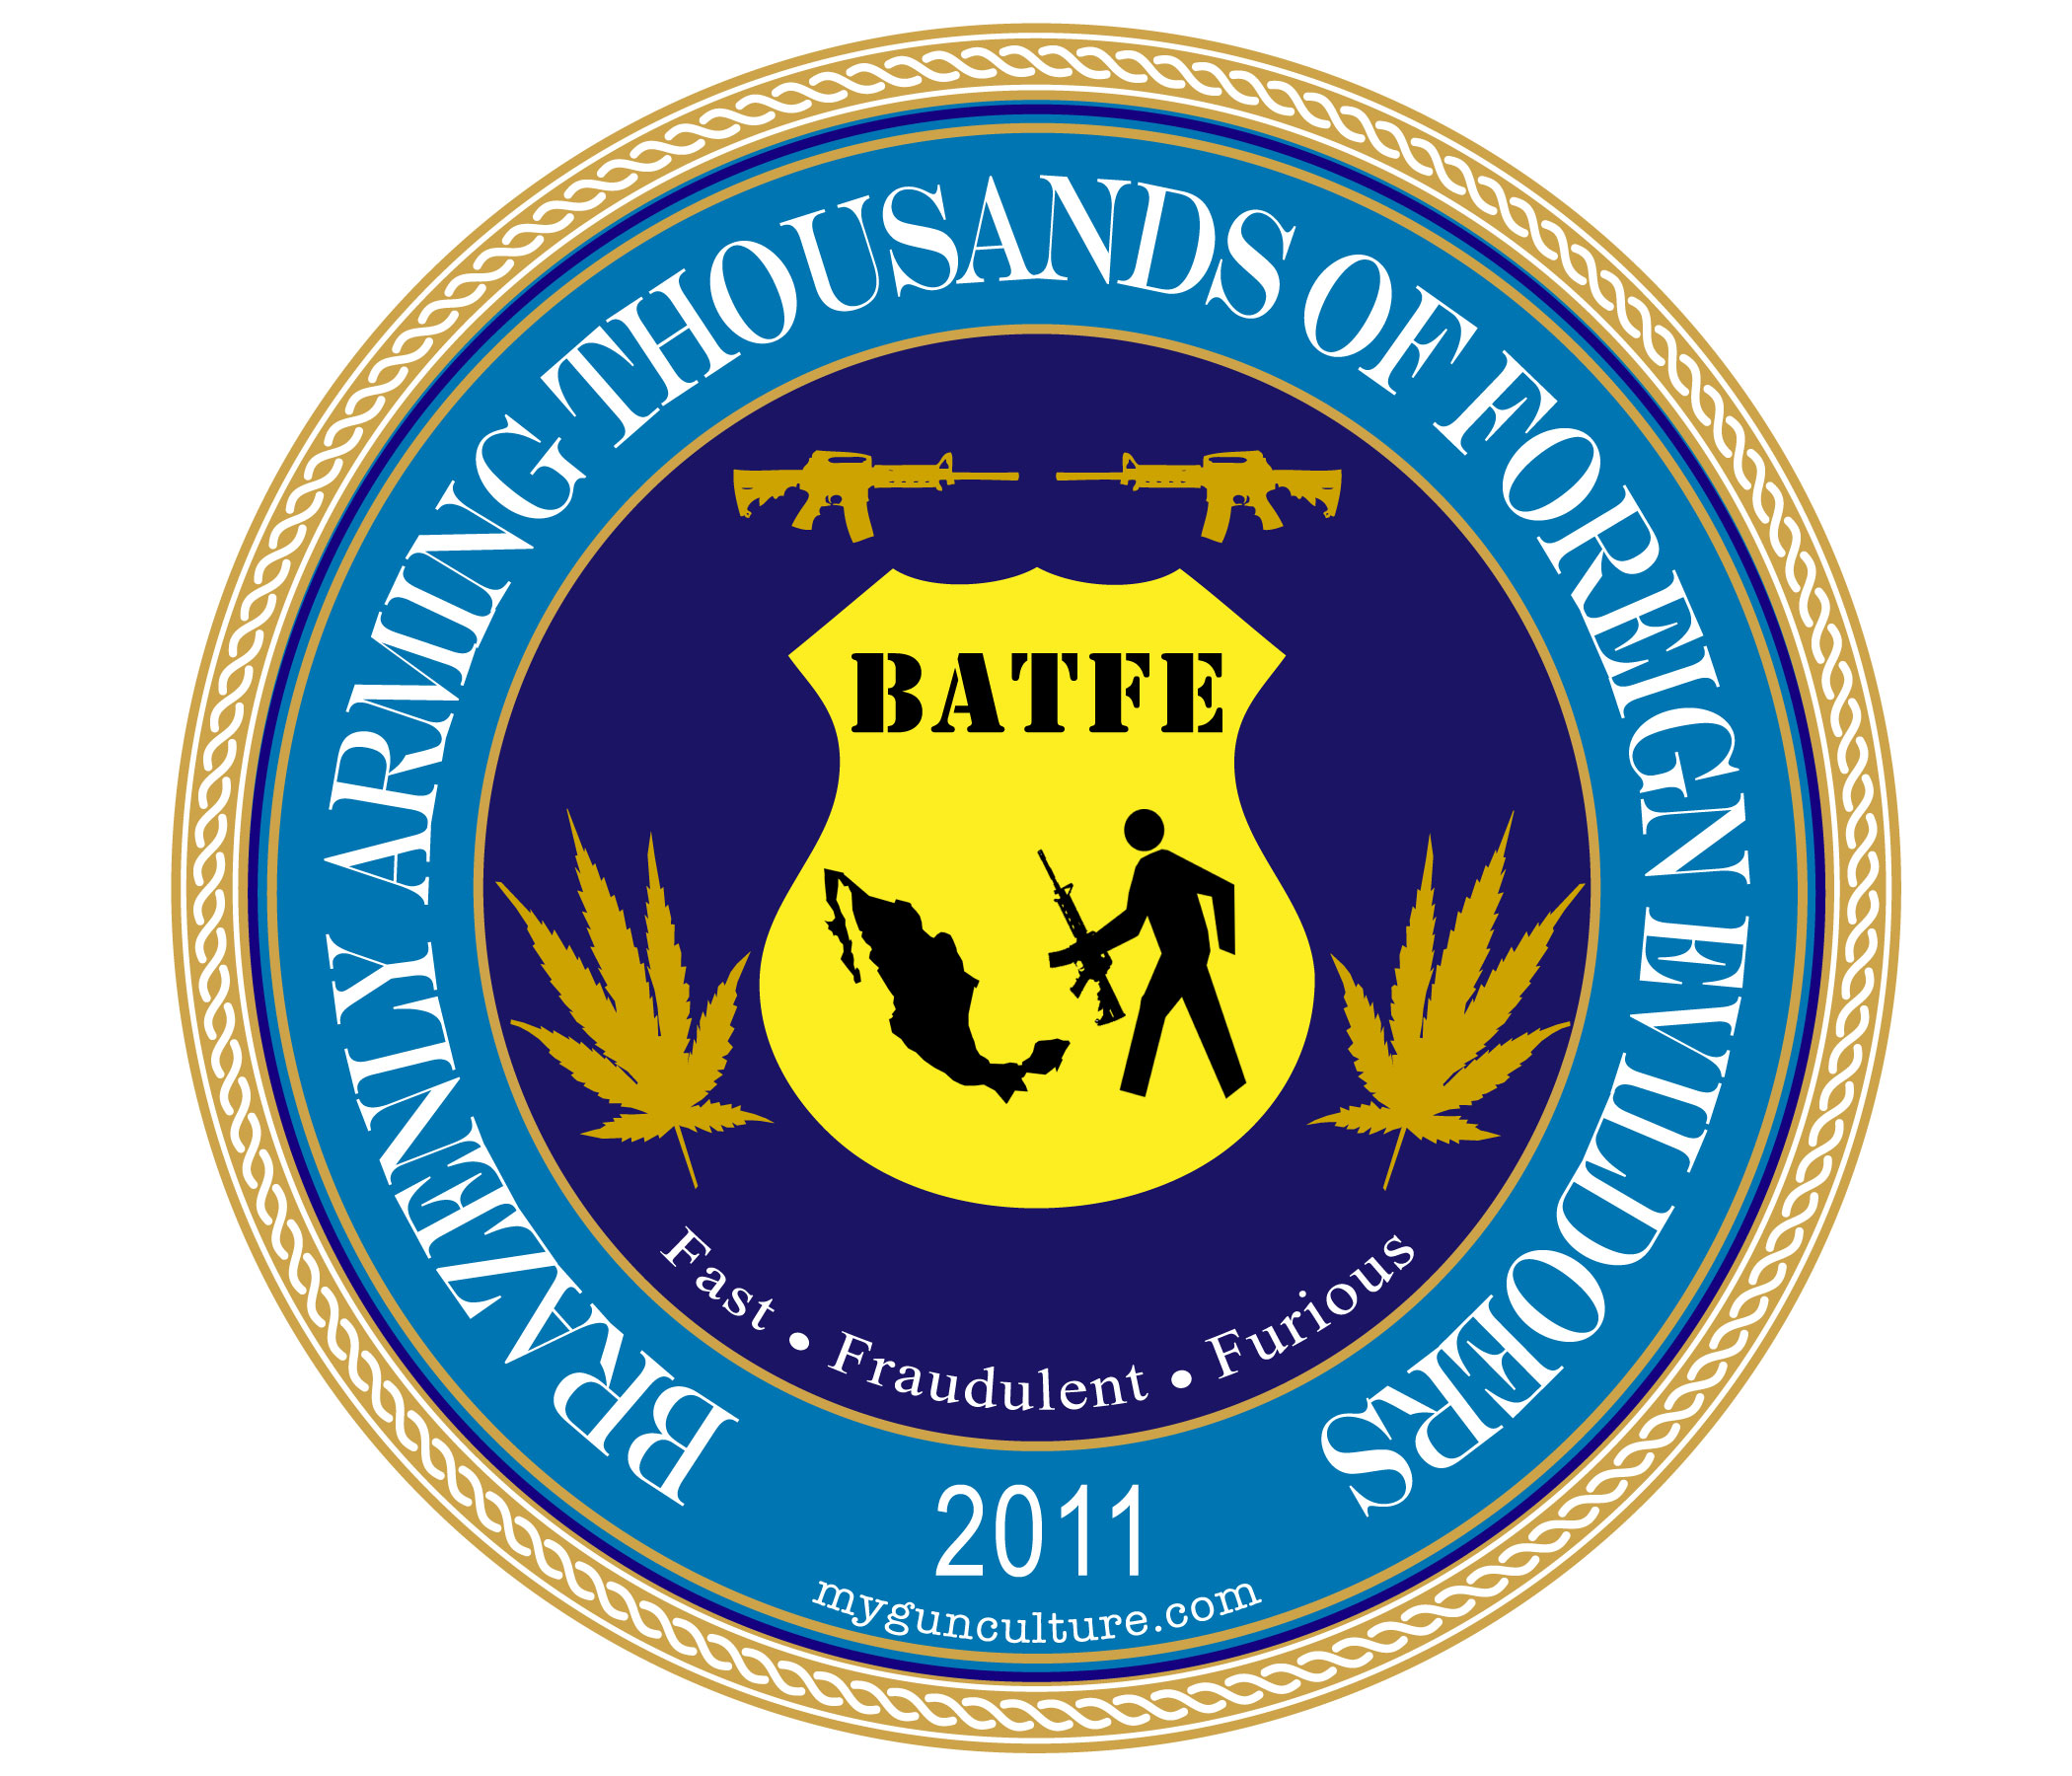 ATF / BATFE new logo